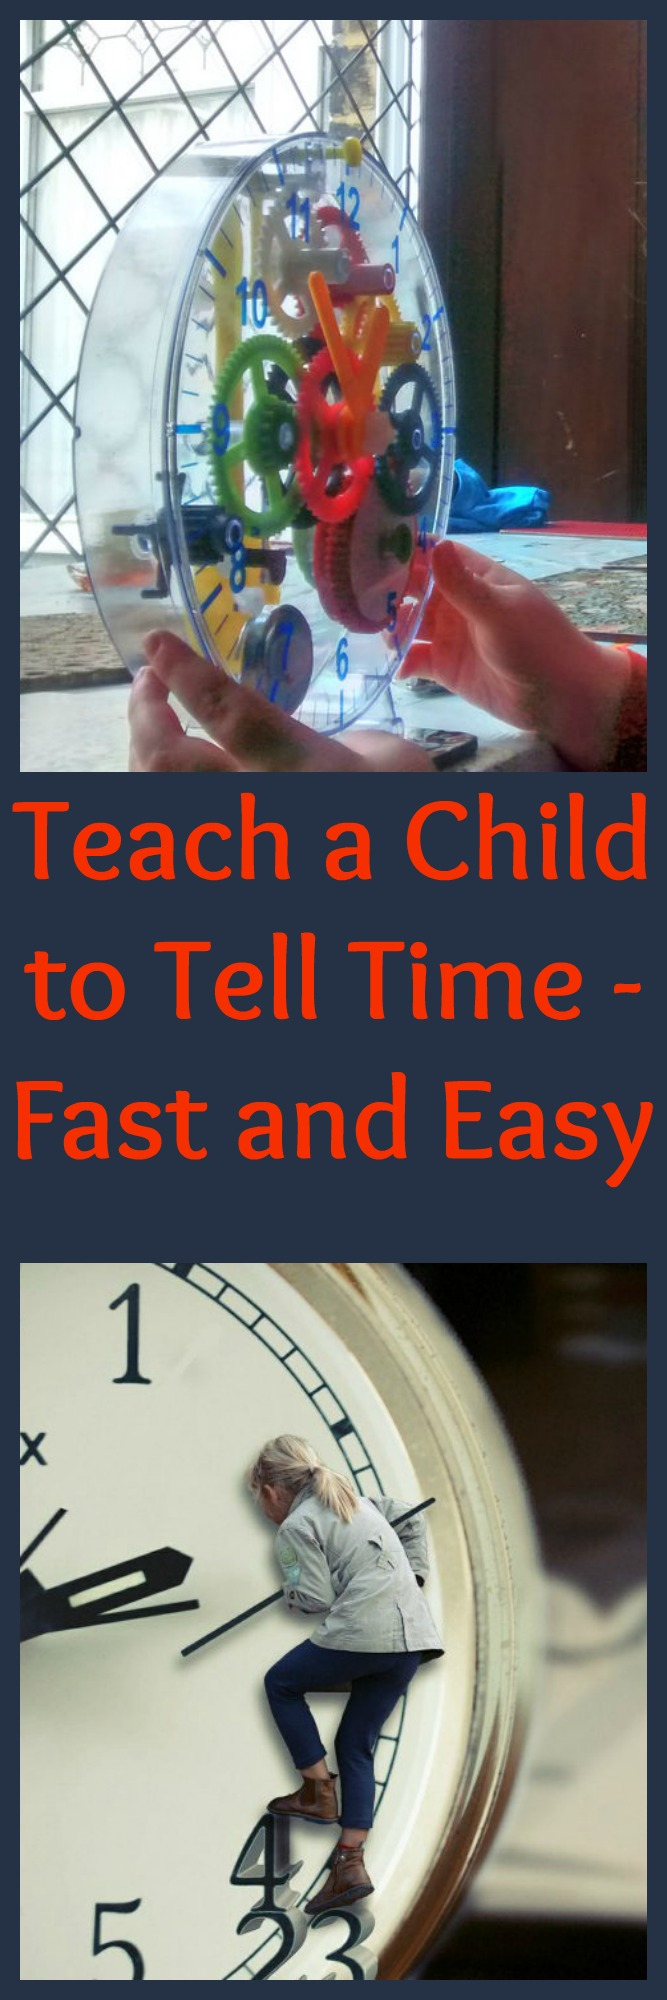 Teach a Child to Tell Time - Fast and Easy